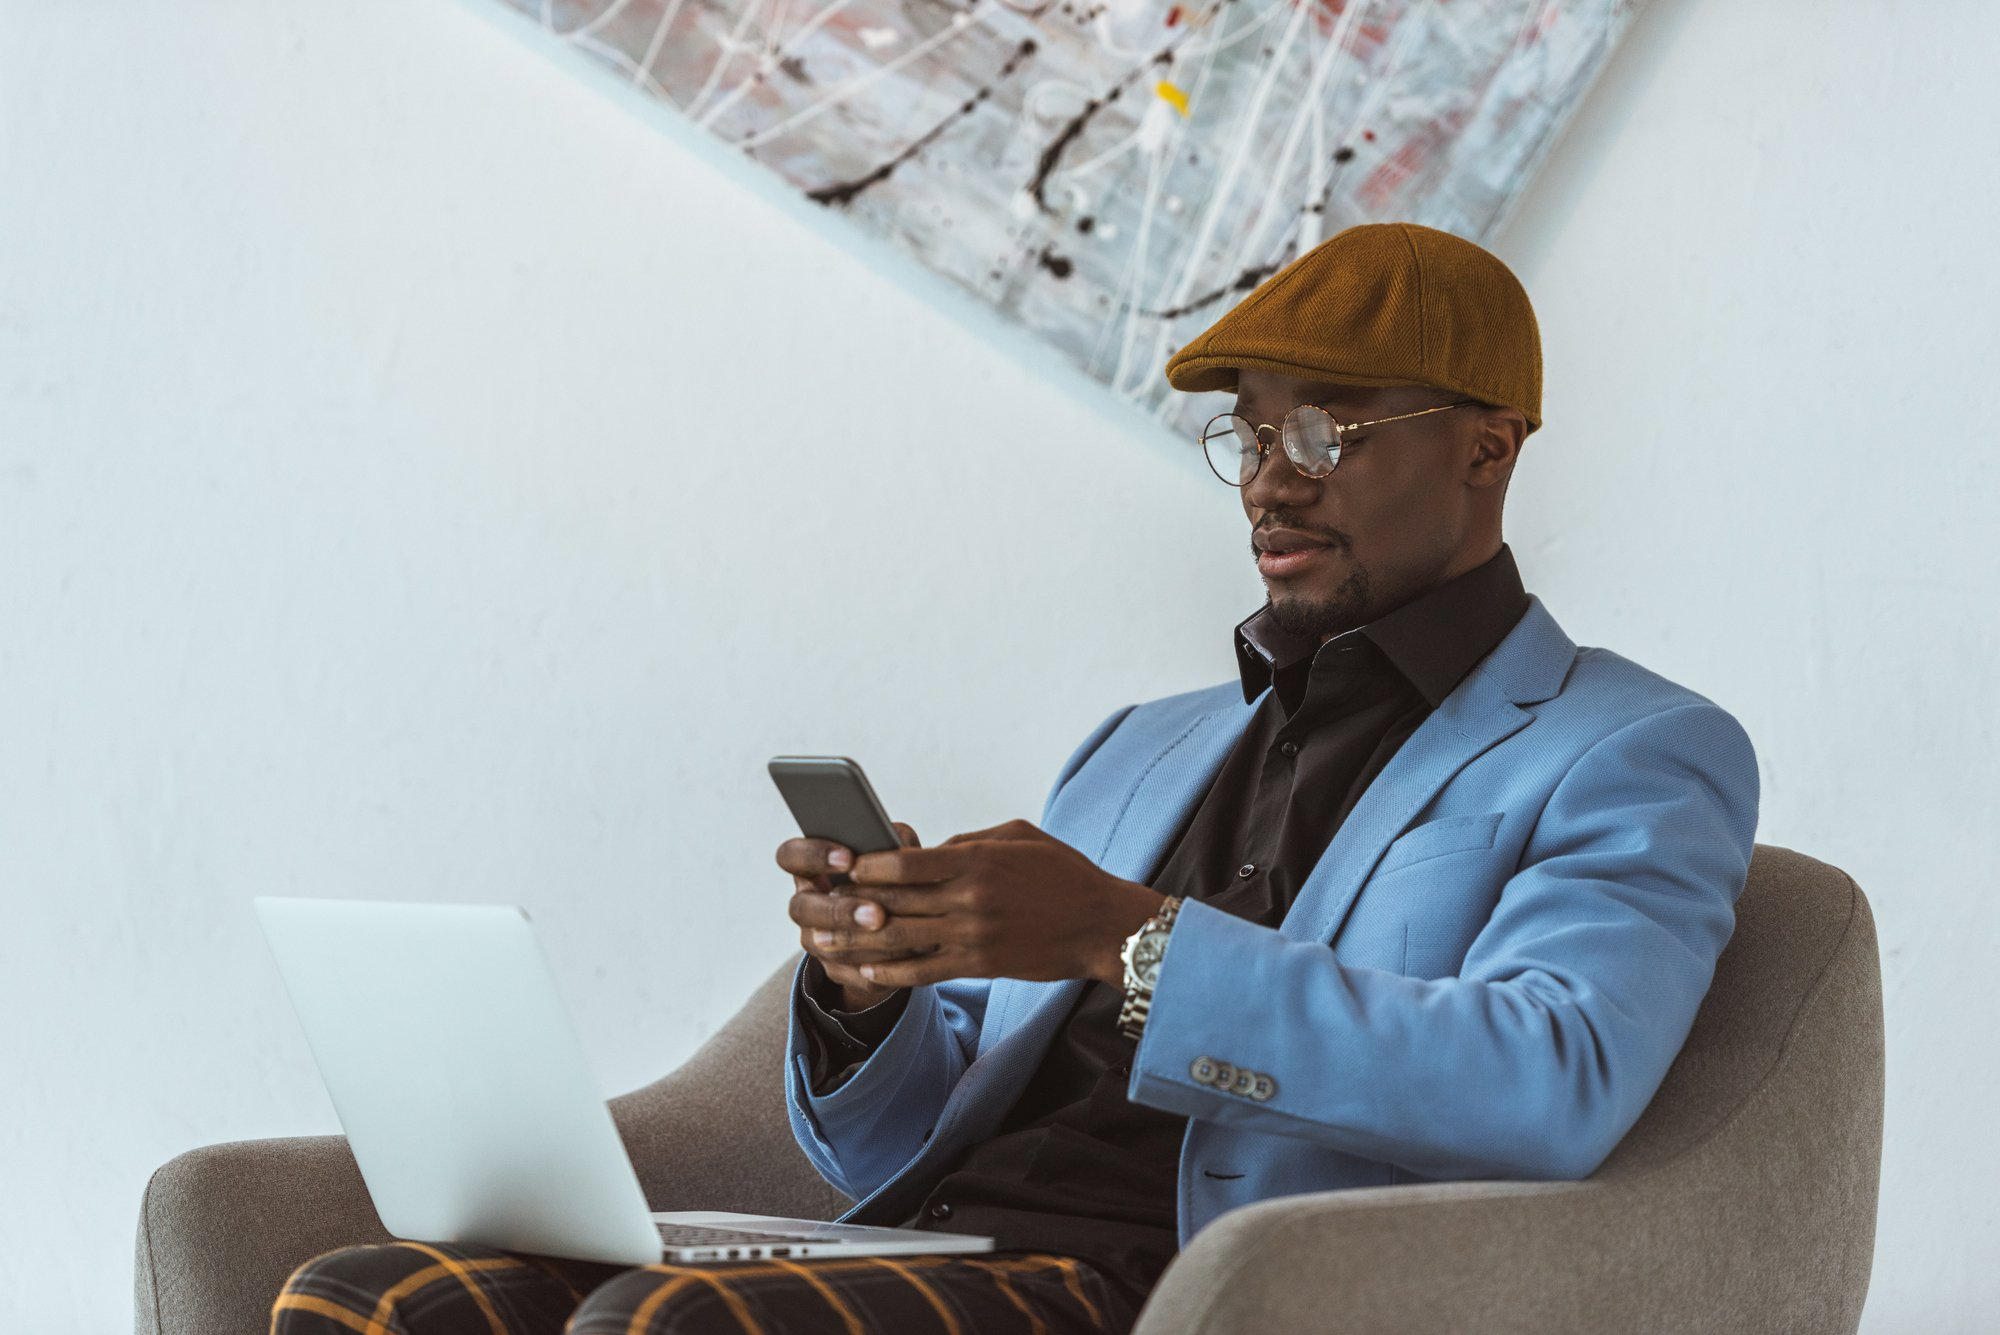 African american man using laptop and smartphone